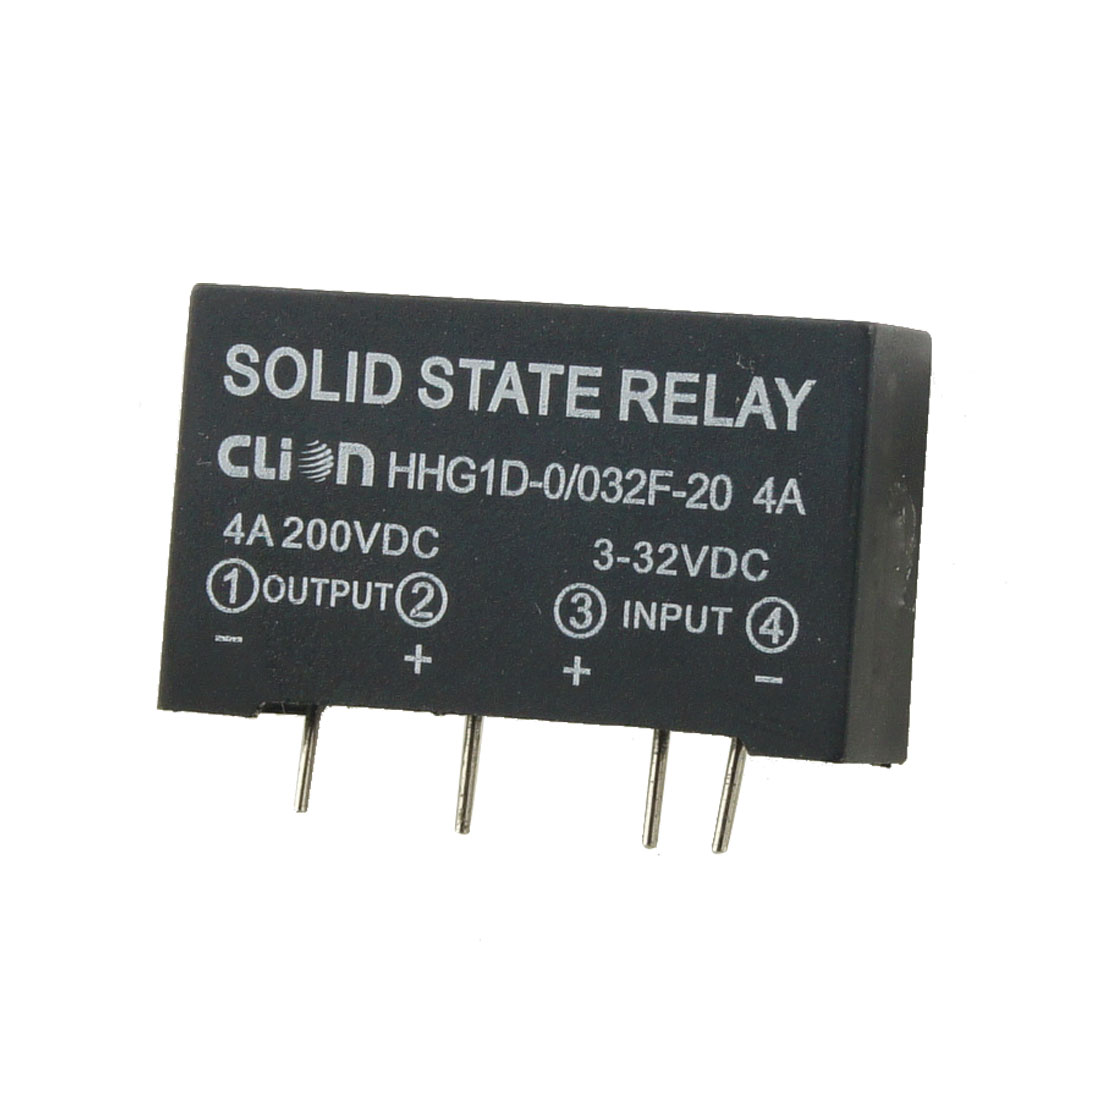 Input 3-32V DC Output 4A 200V DC 4 Pin PCB Solid State Relay HHG1D-0/032F-20